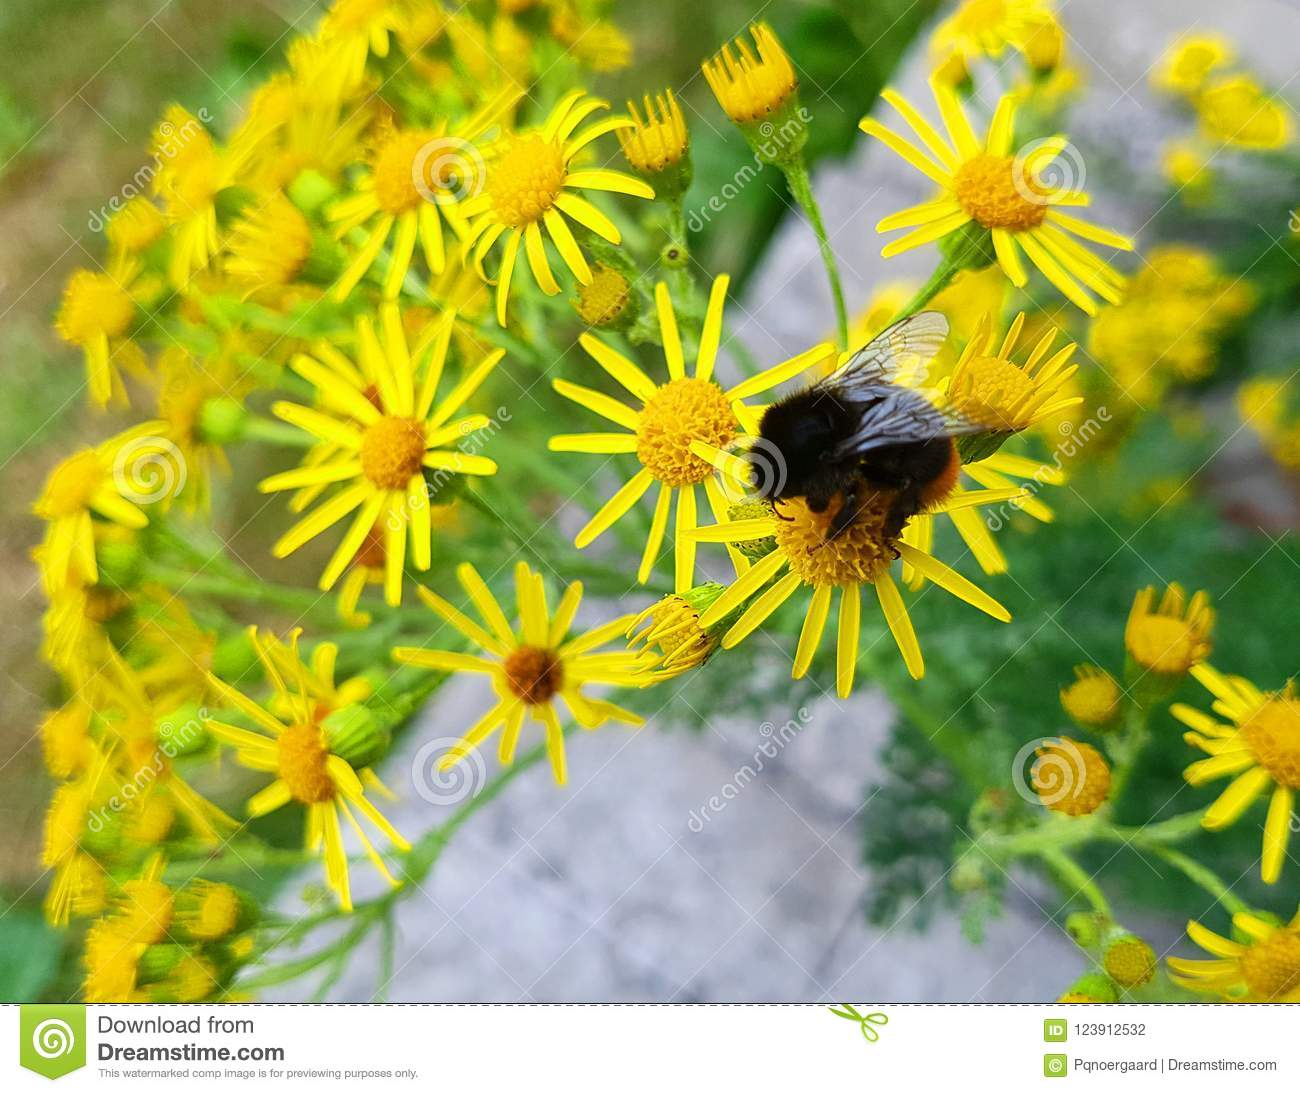 Tansy Ragwort A Poisonous Flower When Eaten By Horses Or Cows